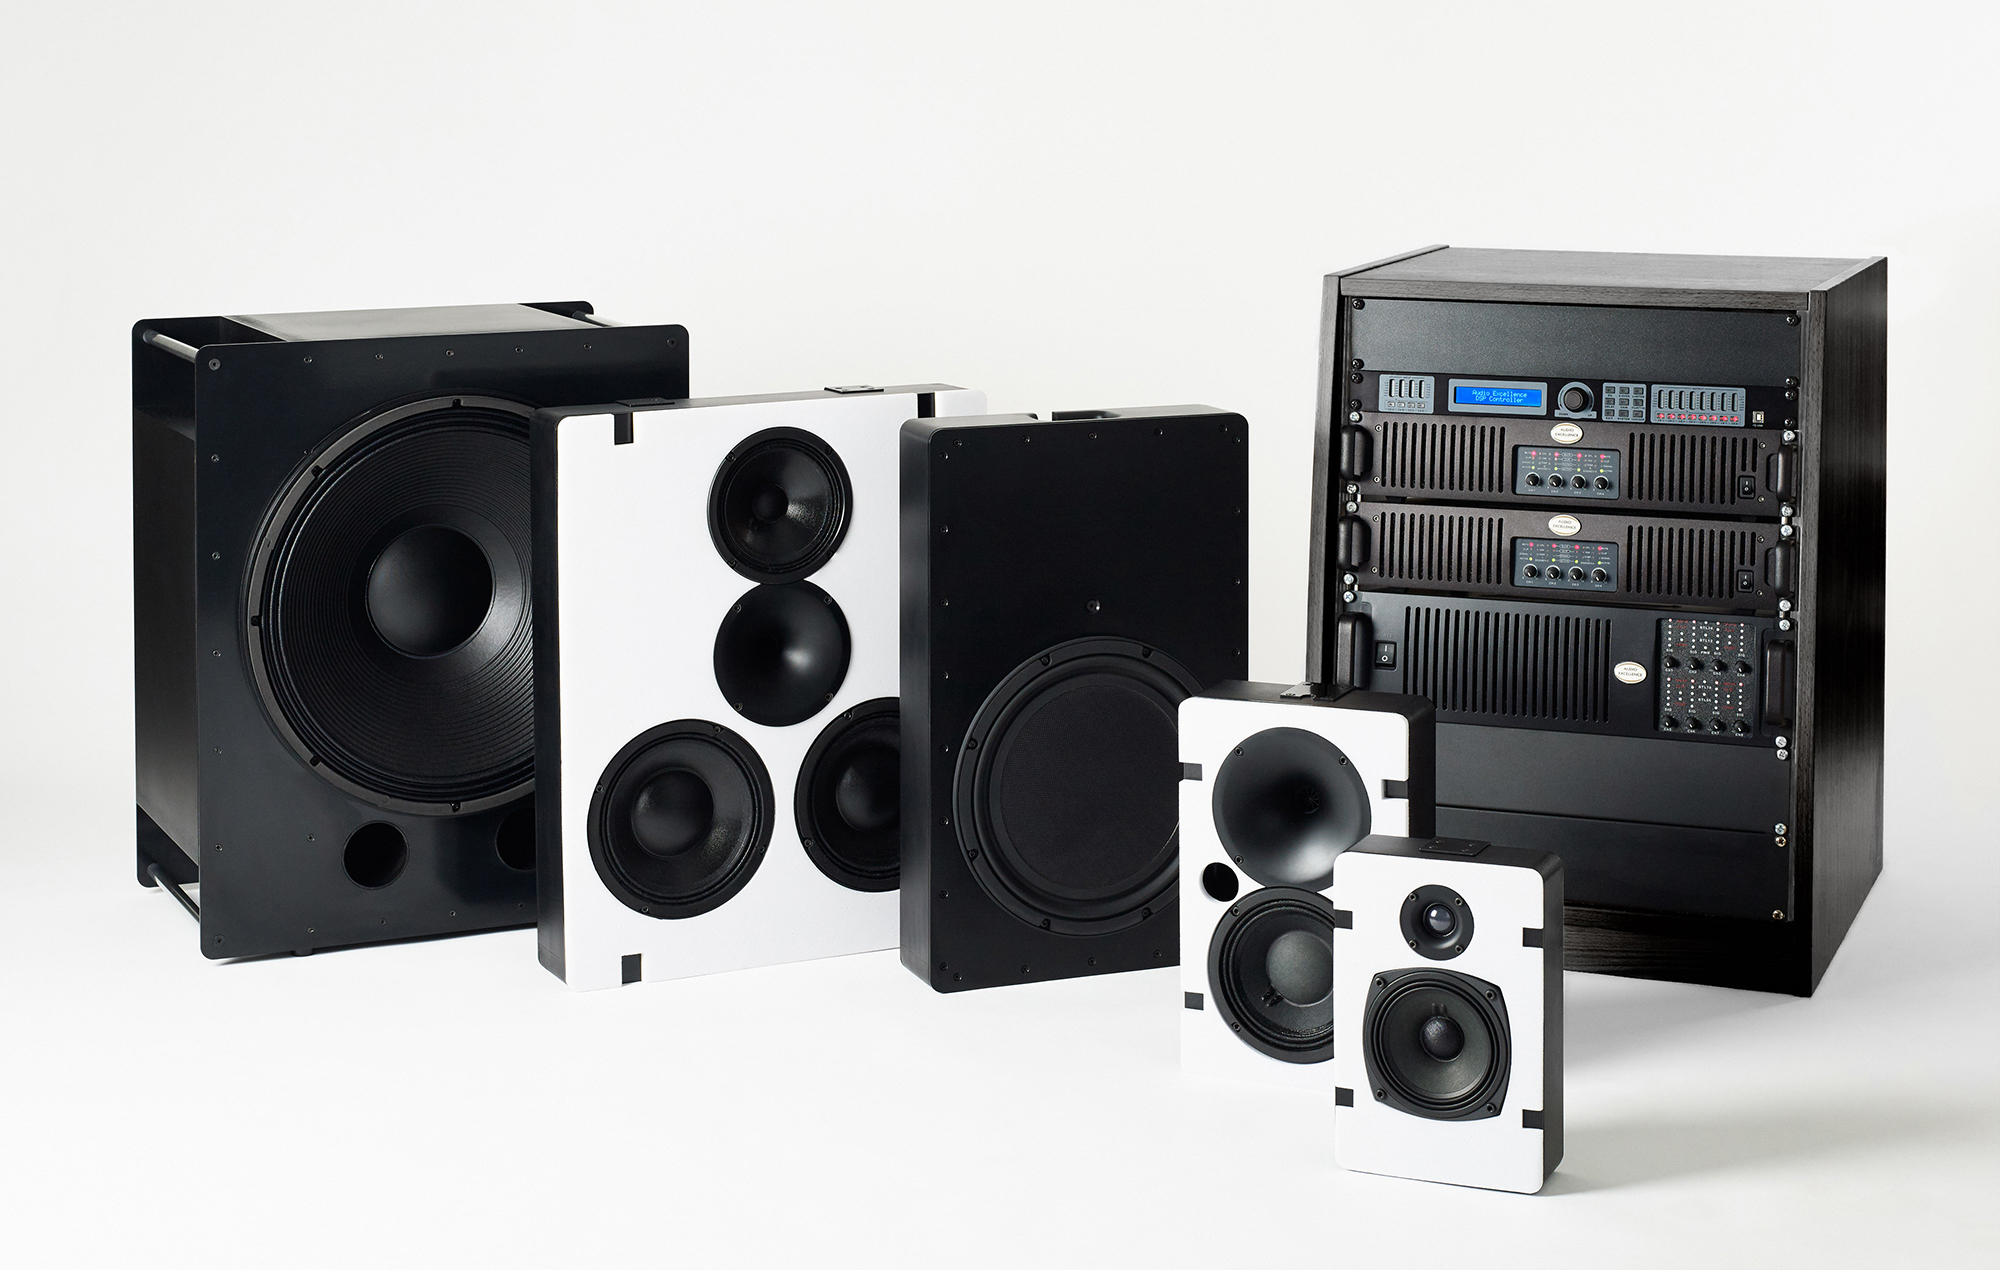 Audio Excellence Home Cinema High End Screen Loudspeakers What Does Your Wiring Cabinet Look Like Avs Forum Theater The Result Is A Theatre Experience That Yields Type Of Superior Dialogue Intelligibility And Bass Management Witnessed Only In Professional